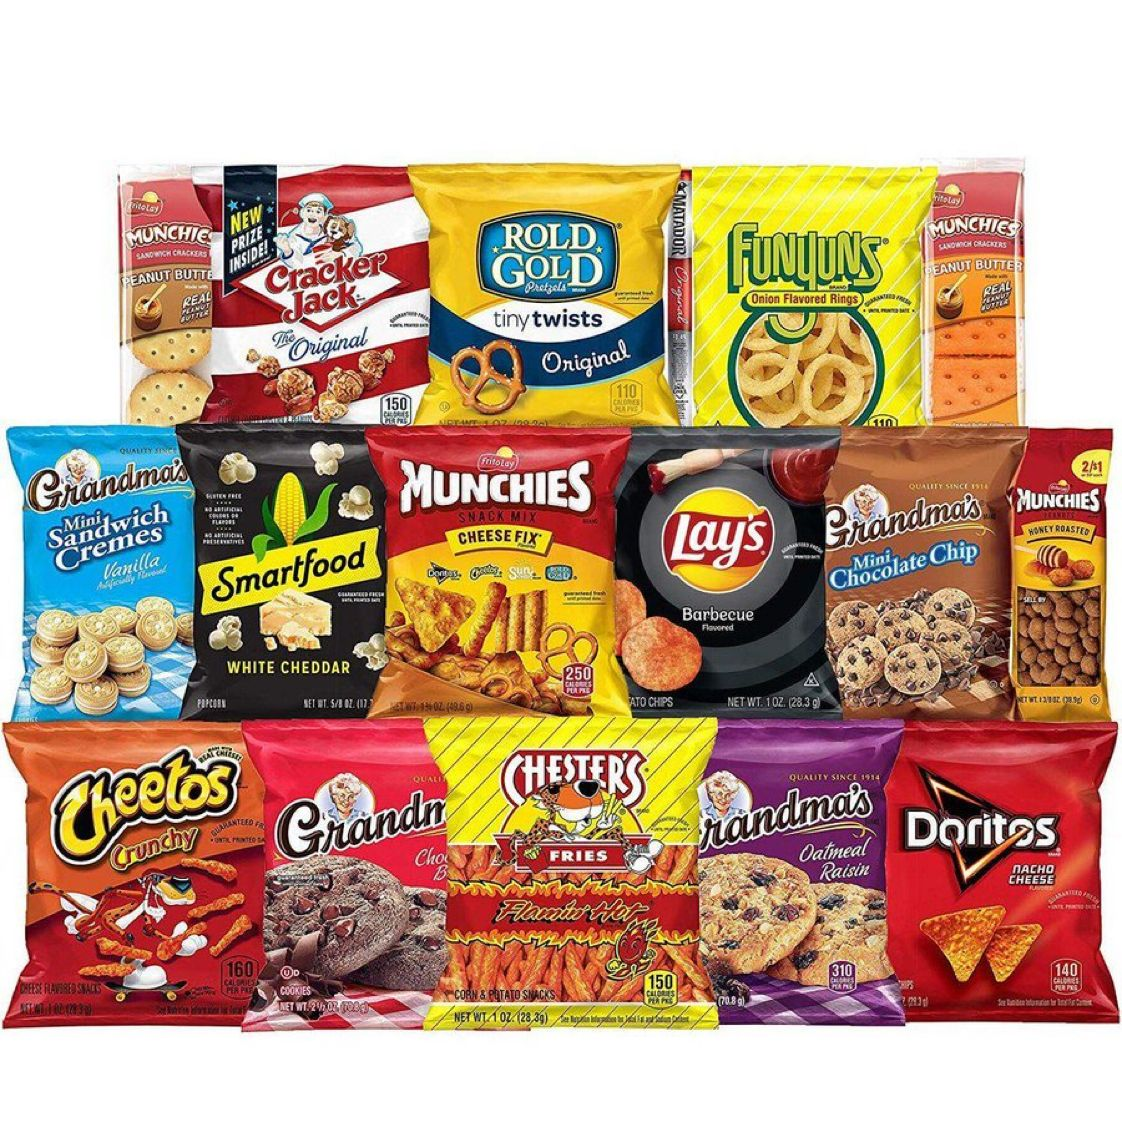 Ultimate Snack Care Package, Variety Assortment of Chips, Cookies, Crackers & More, 40 Count     $15.37 with Free Prime Shipping      #steals #deals #stealsanddeals